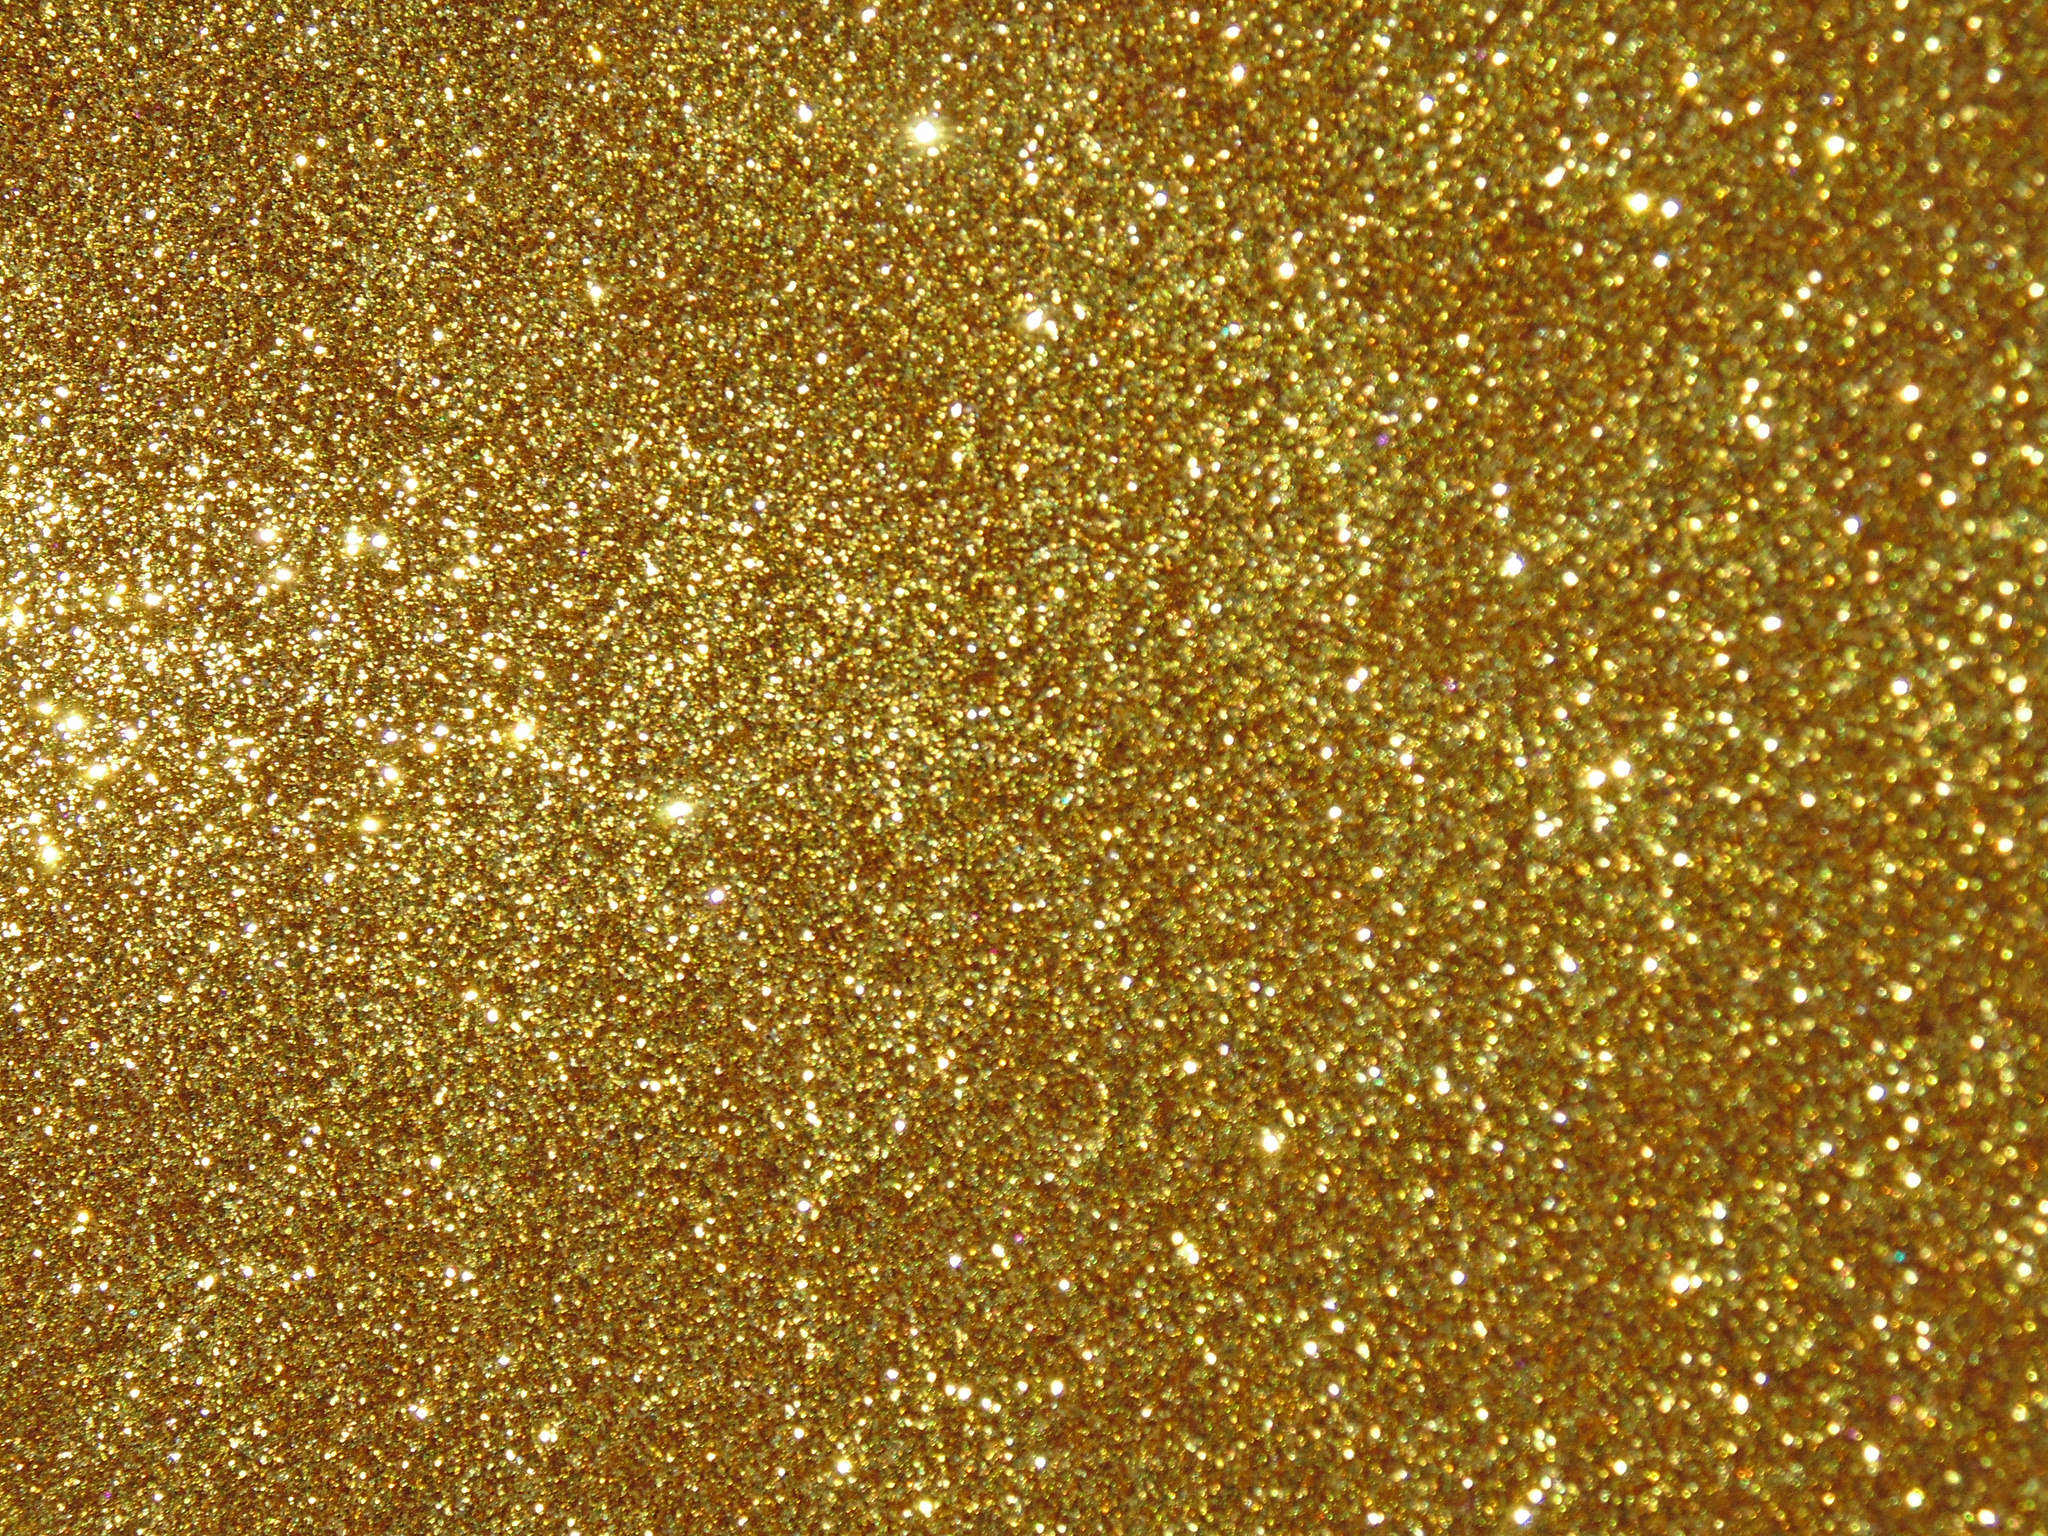 Sparkly Gold Wallpaper